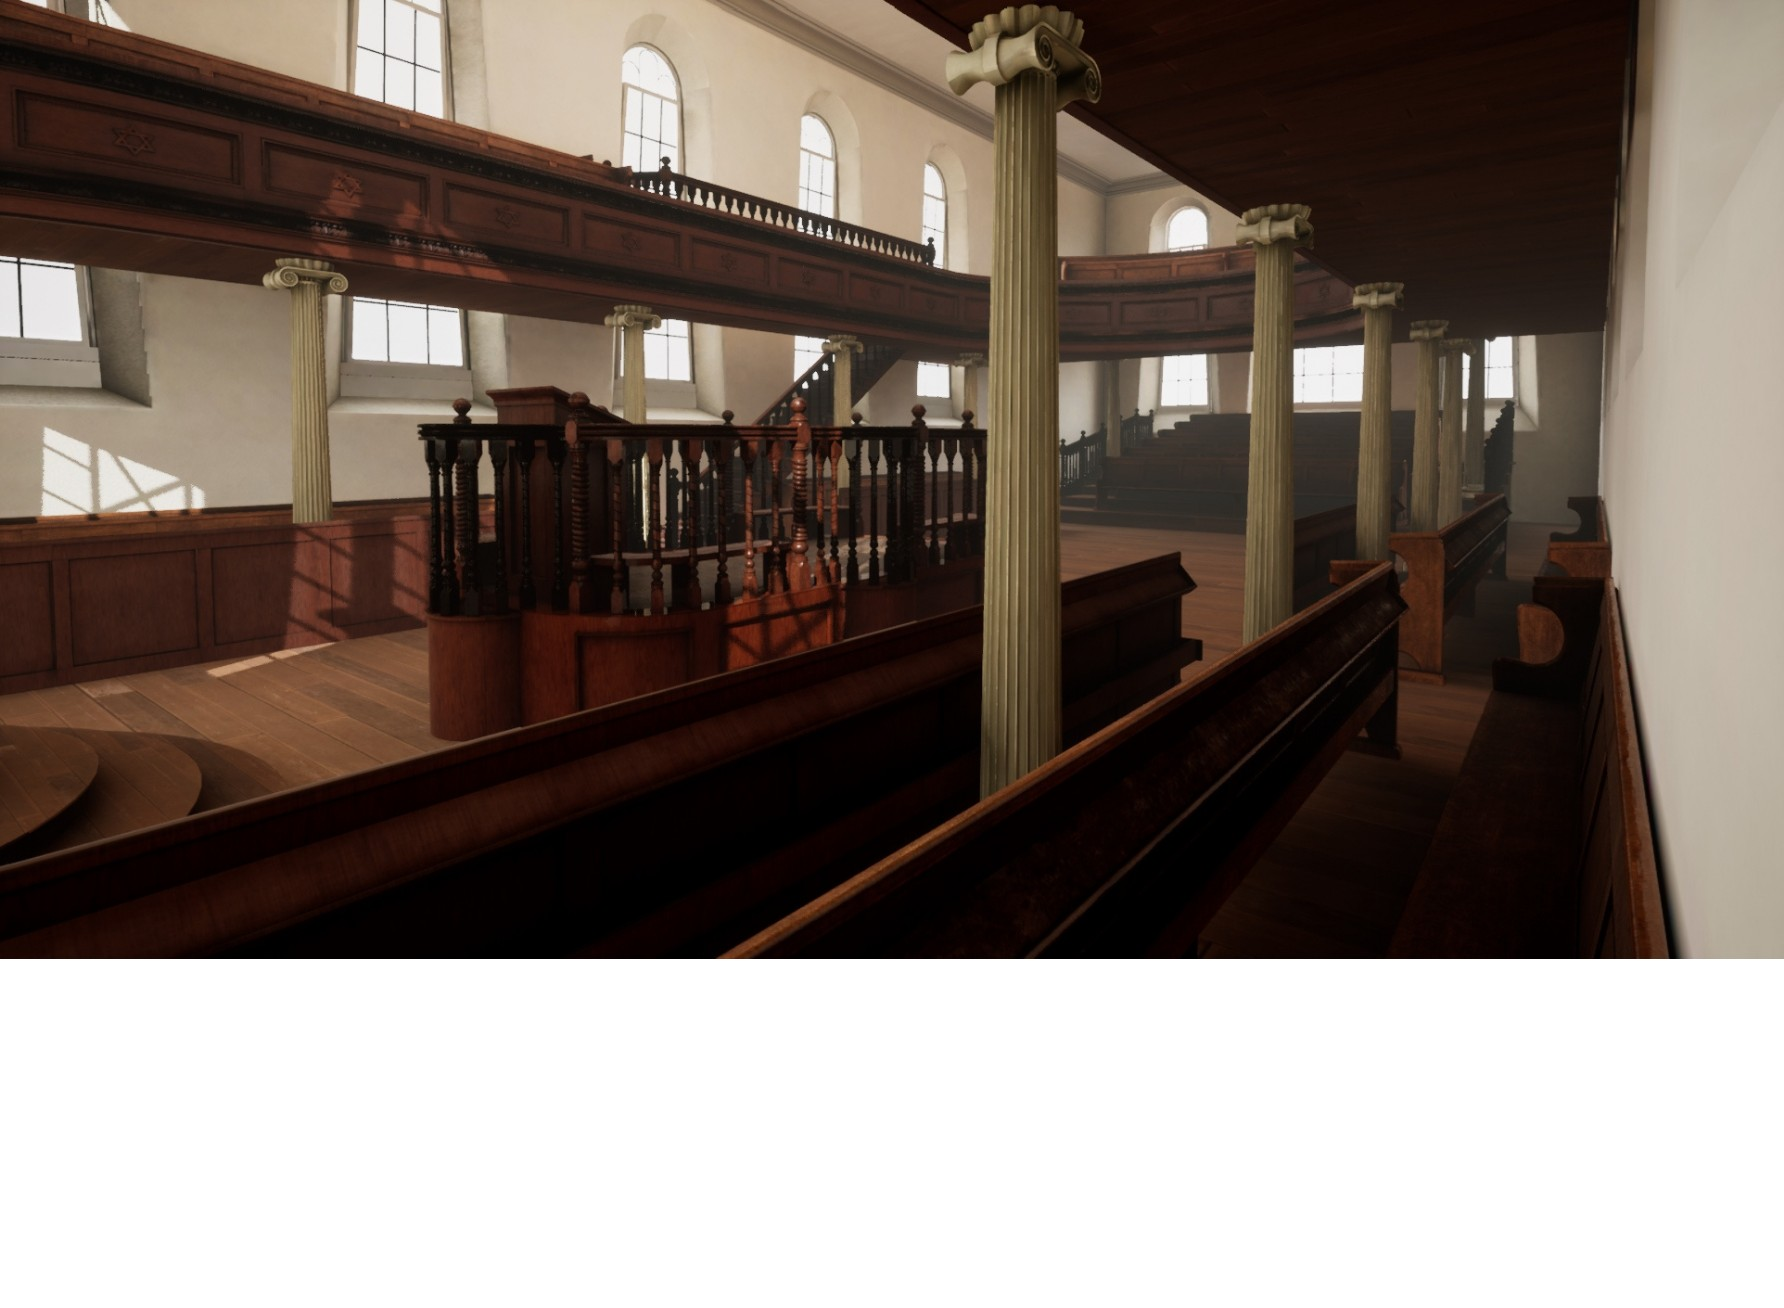 """<span class=""""slider_description"""">3 of 6. After finding old newspapers' clippings and old architectural plans, a 3D virtual interior of the synagogue started to emerge.</span>"""